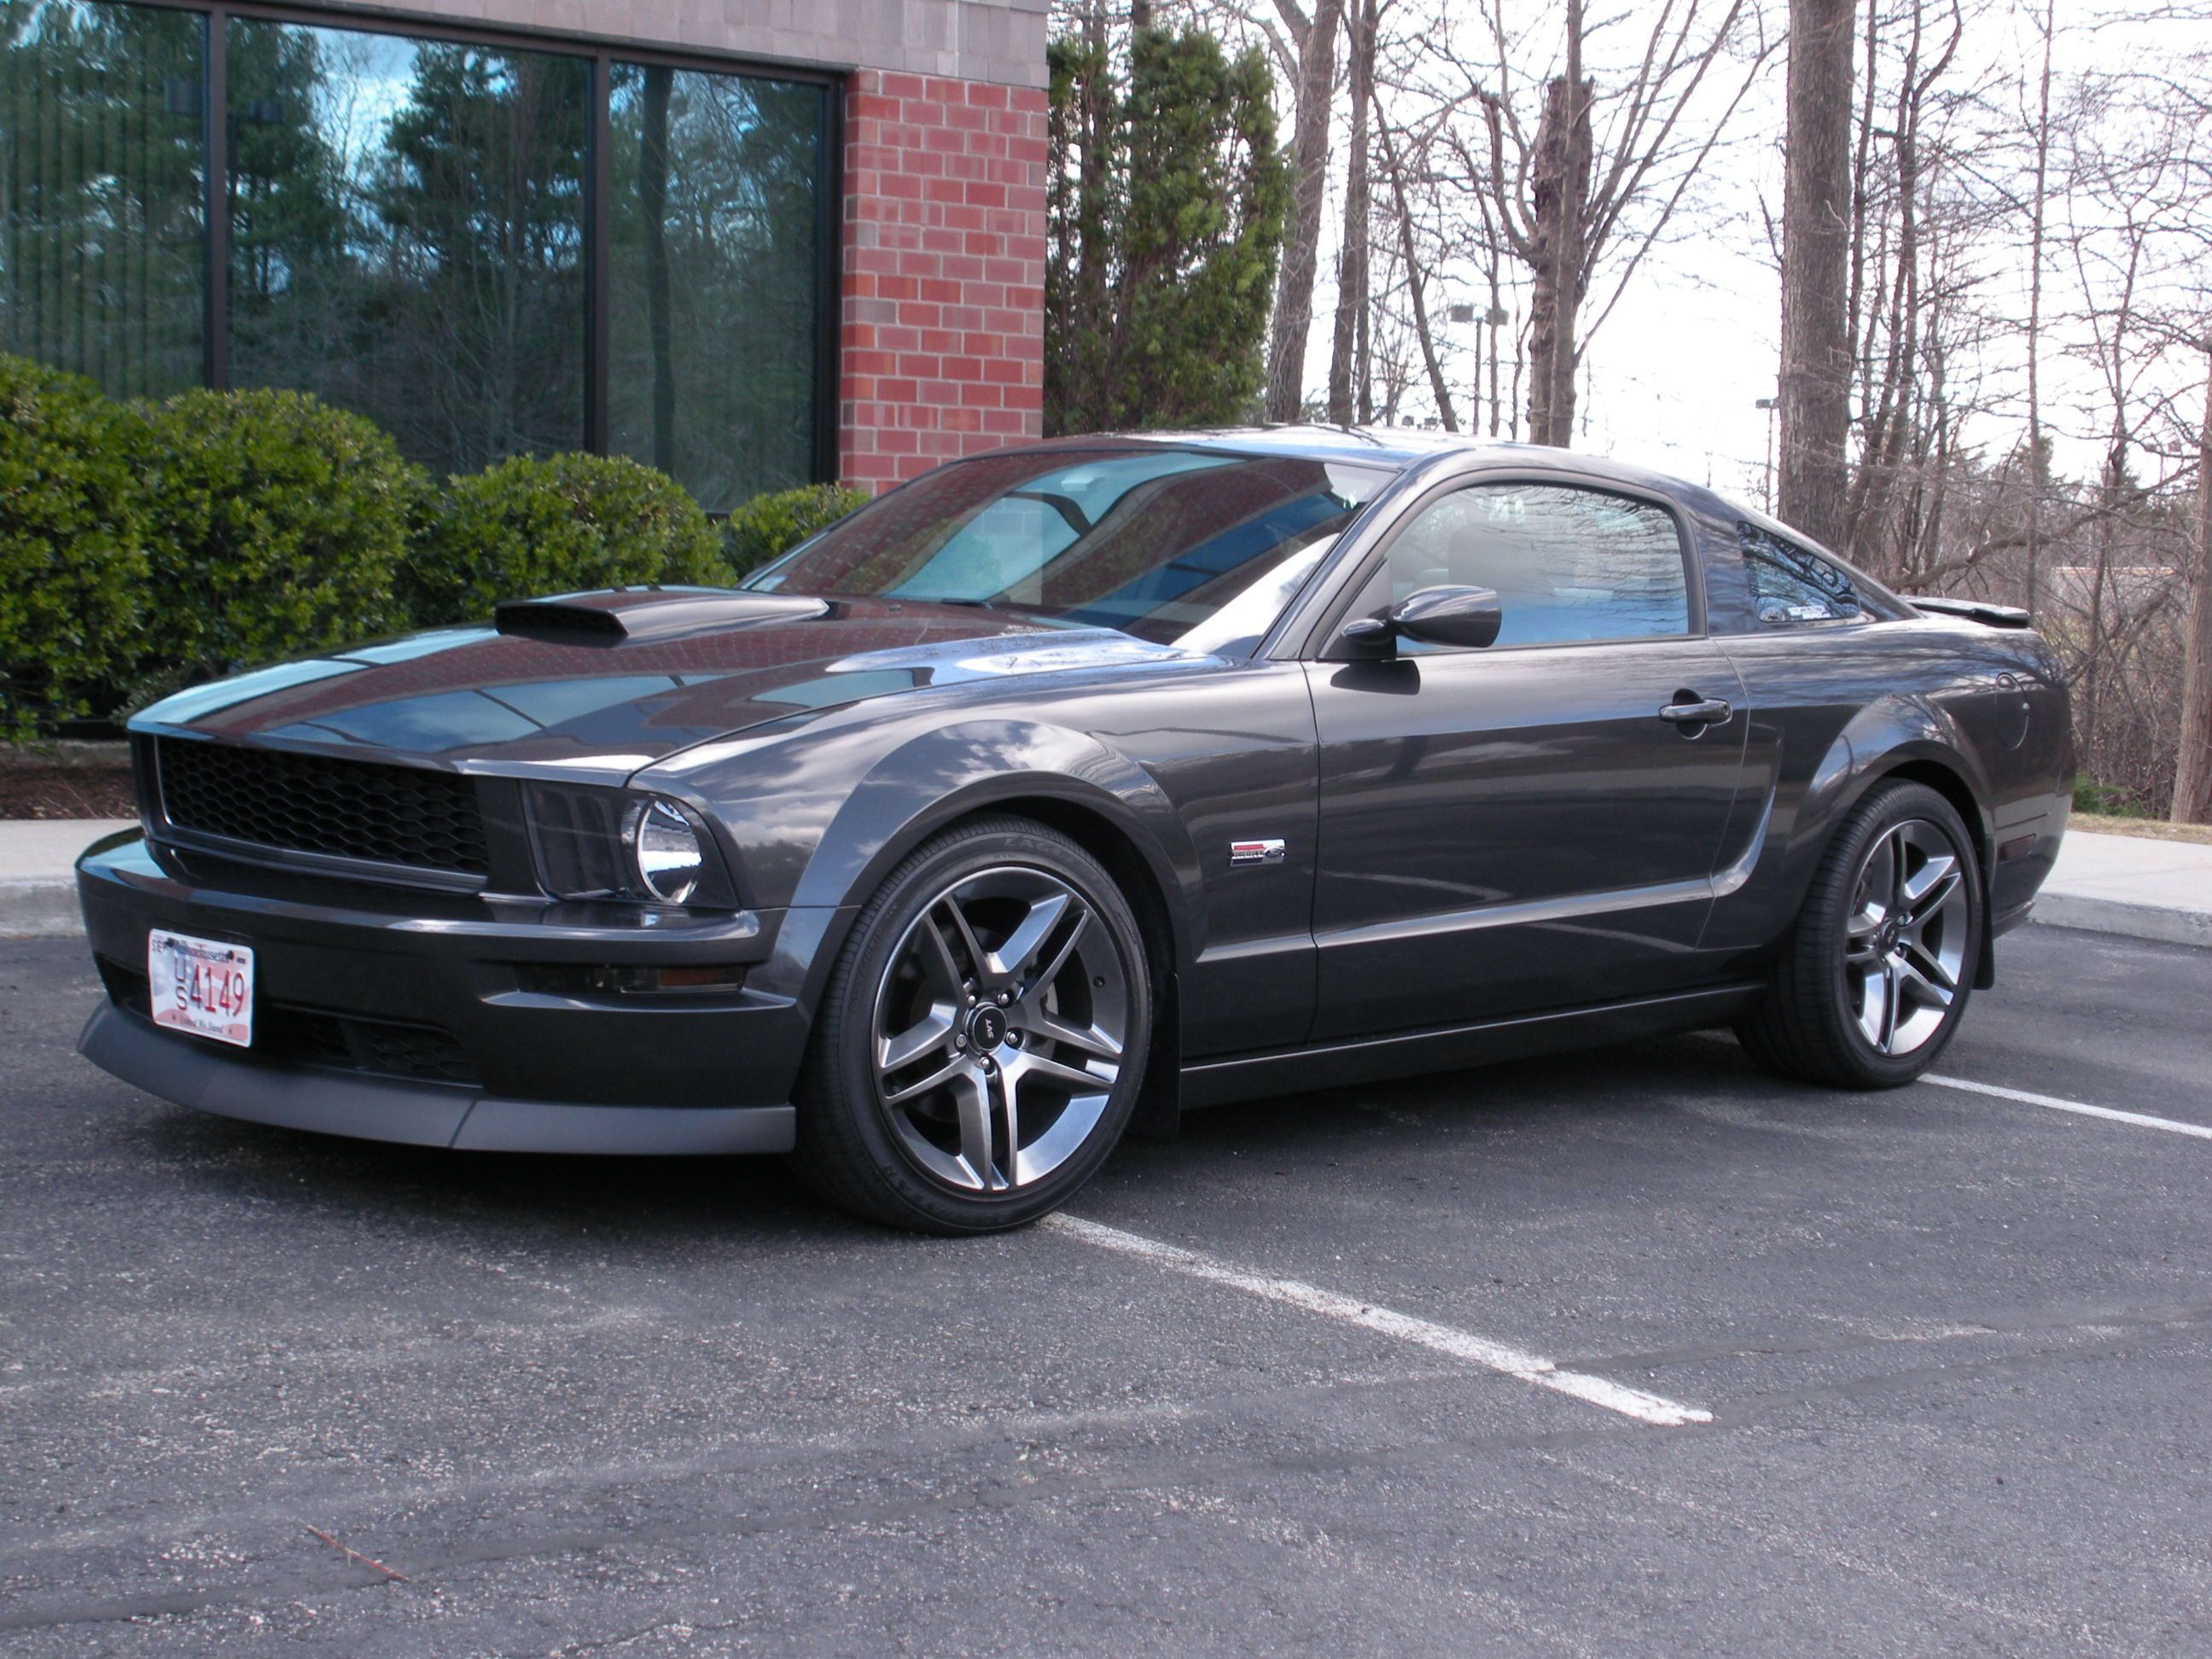 Alloy 2007 Mustang Gt Google Search 2007 Mustang Gt Mustang